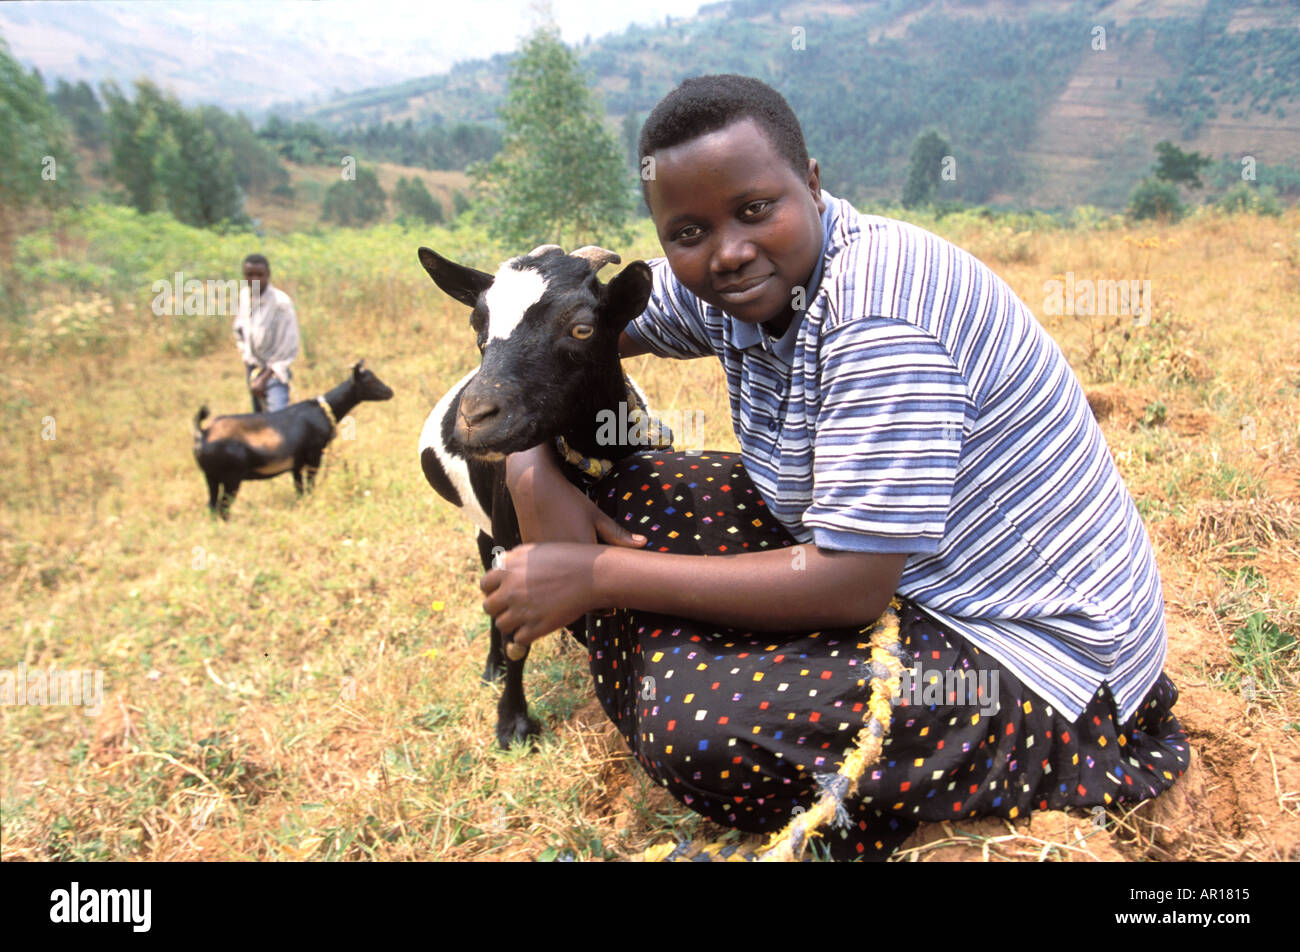 Rwanda genocide orphan Sylvie who is mother to her younger siblings is given a goat by Send a Cow for milk mountains poor sad - Stock Image